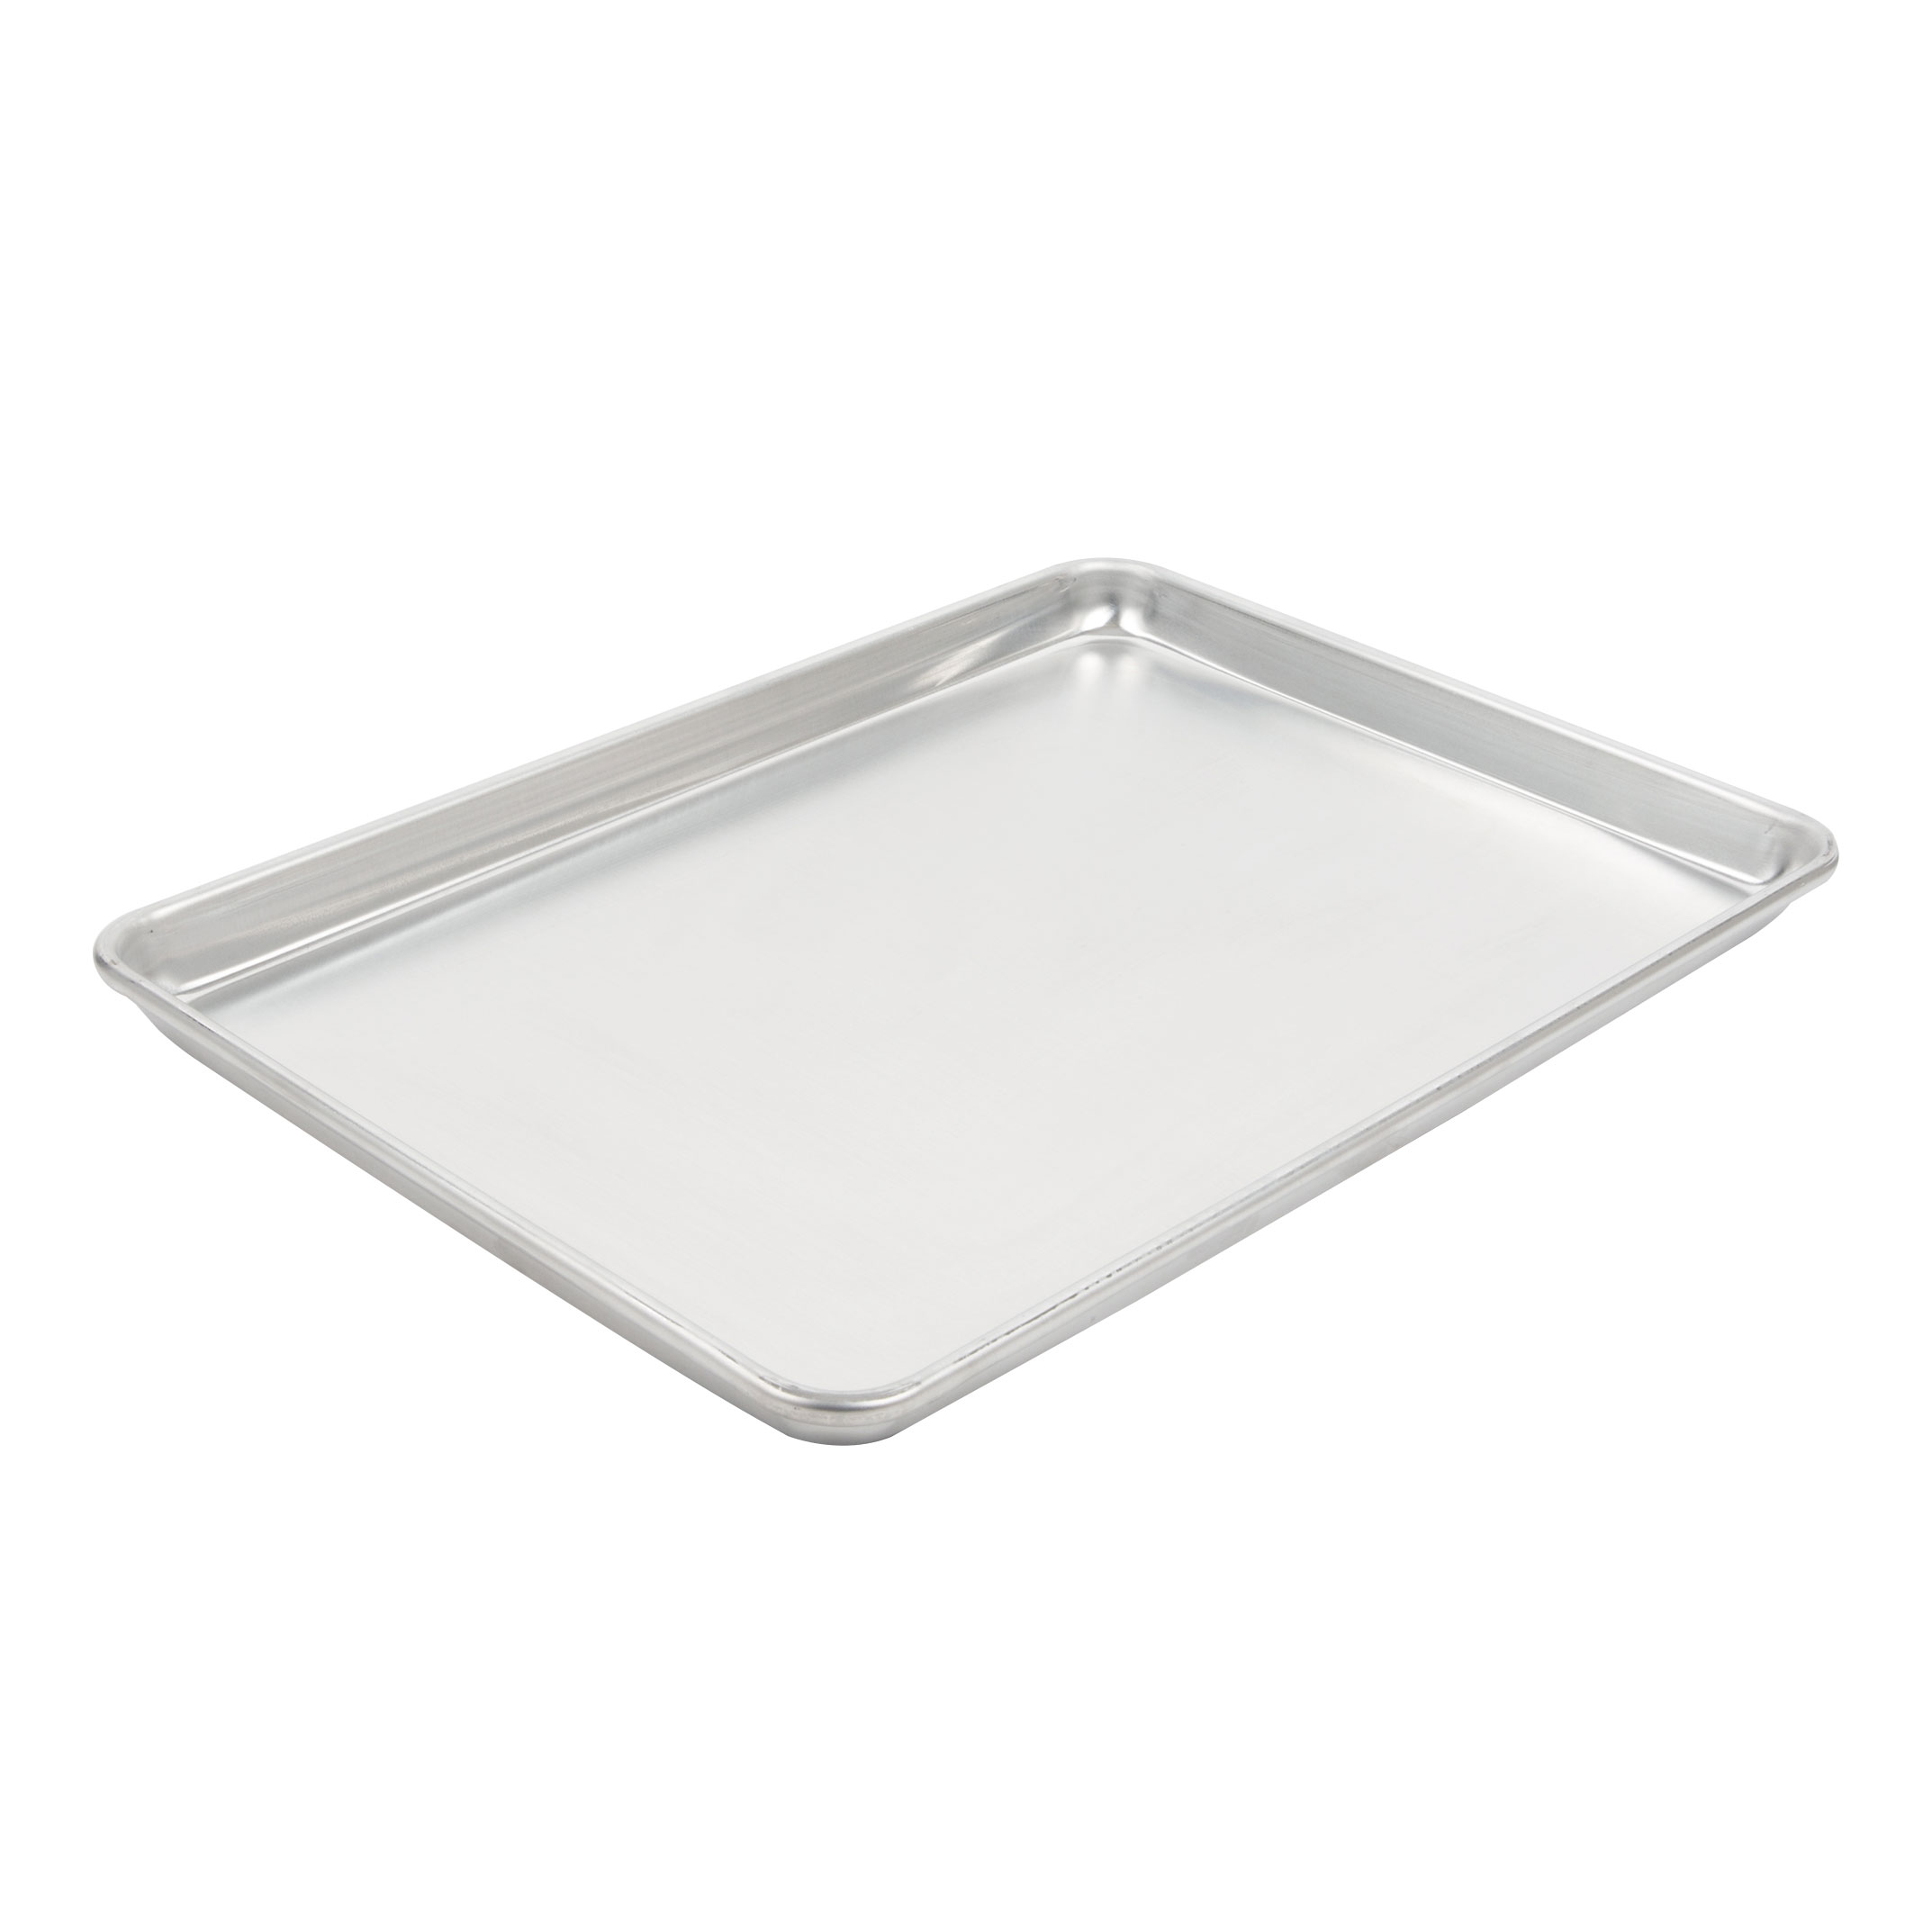 Vollrath 5303 bun / sheet pan